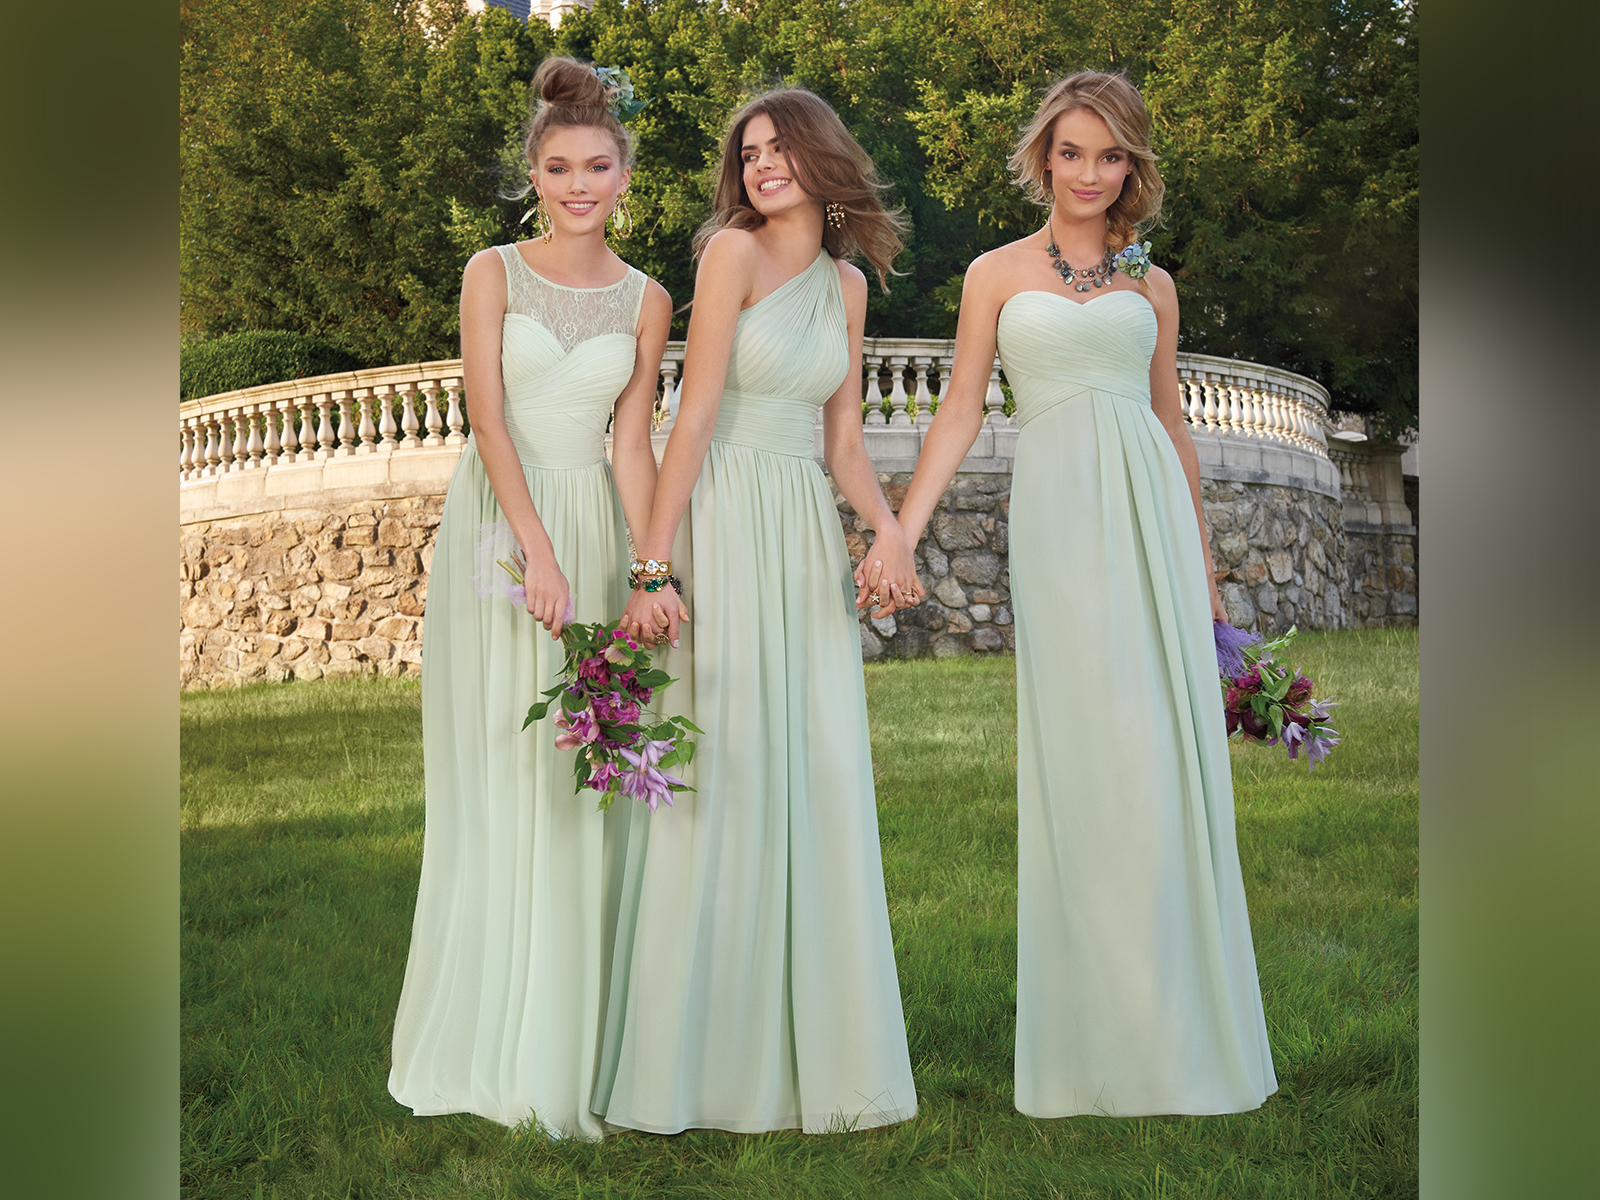 New Sage Bridesmaid Dresses Camille La Vie